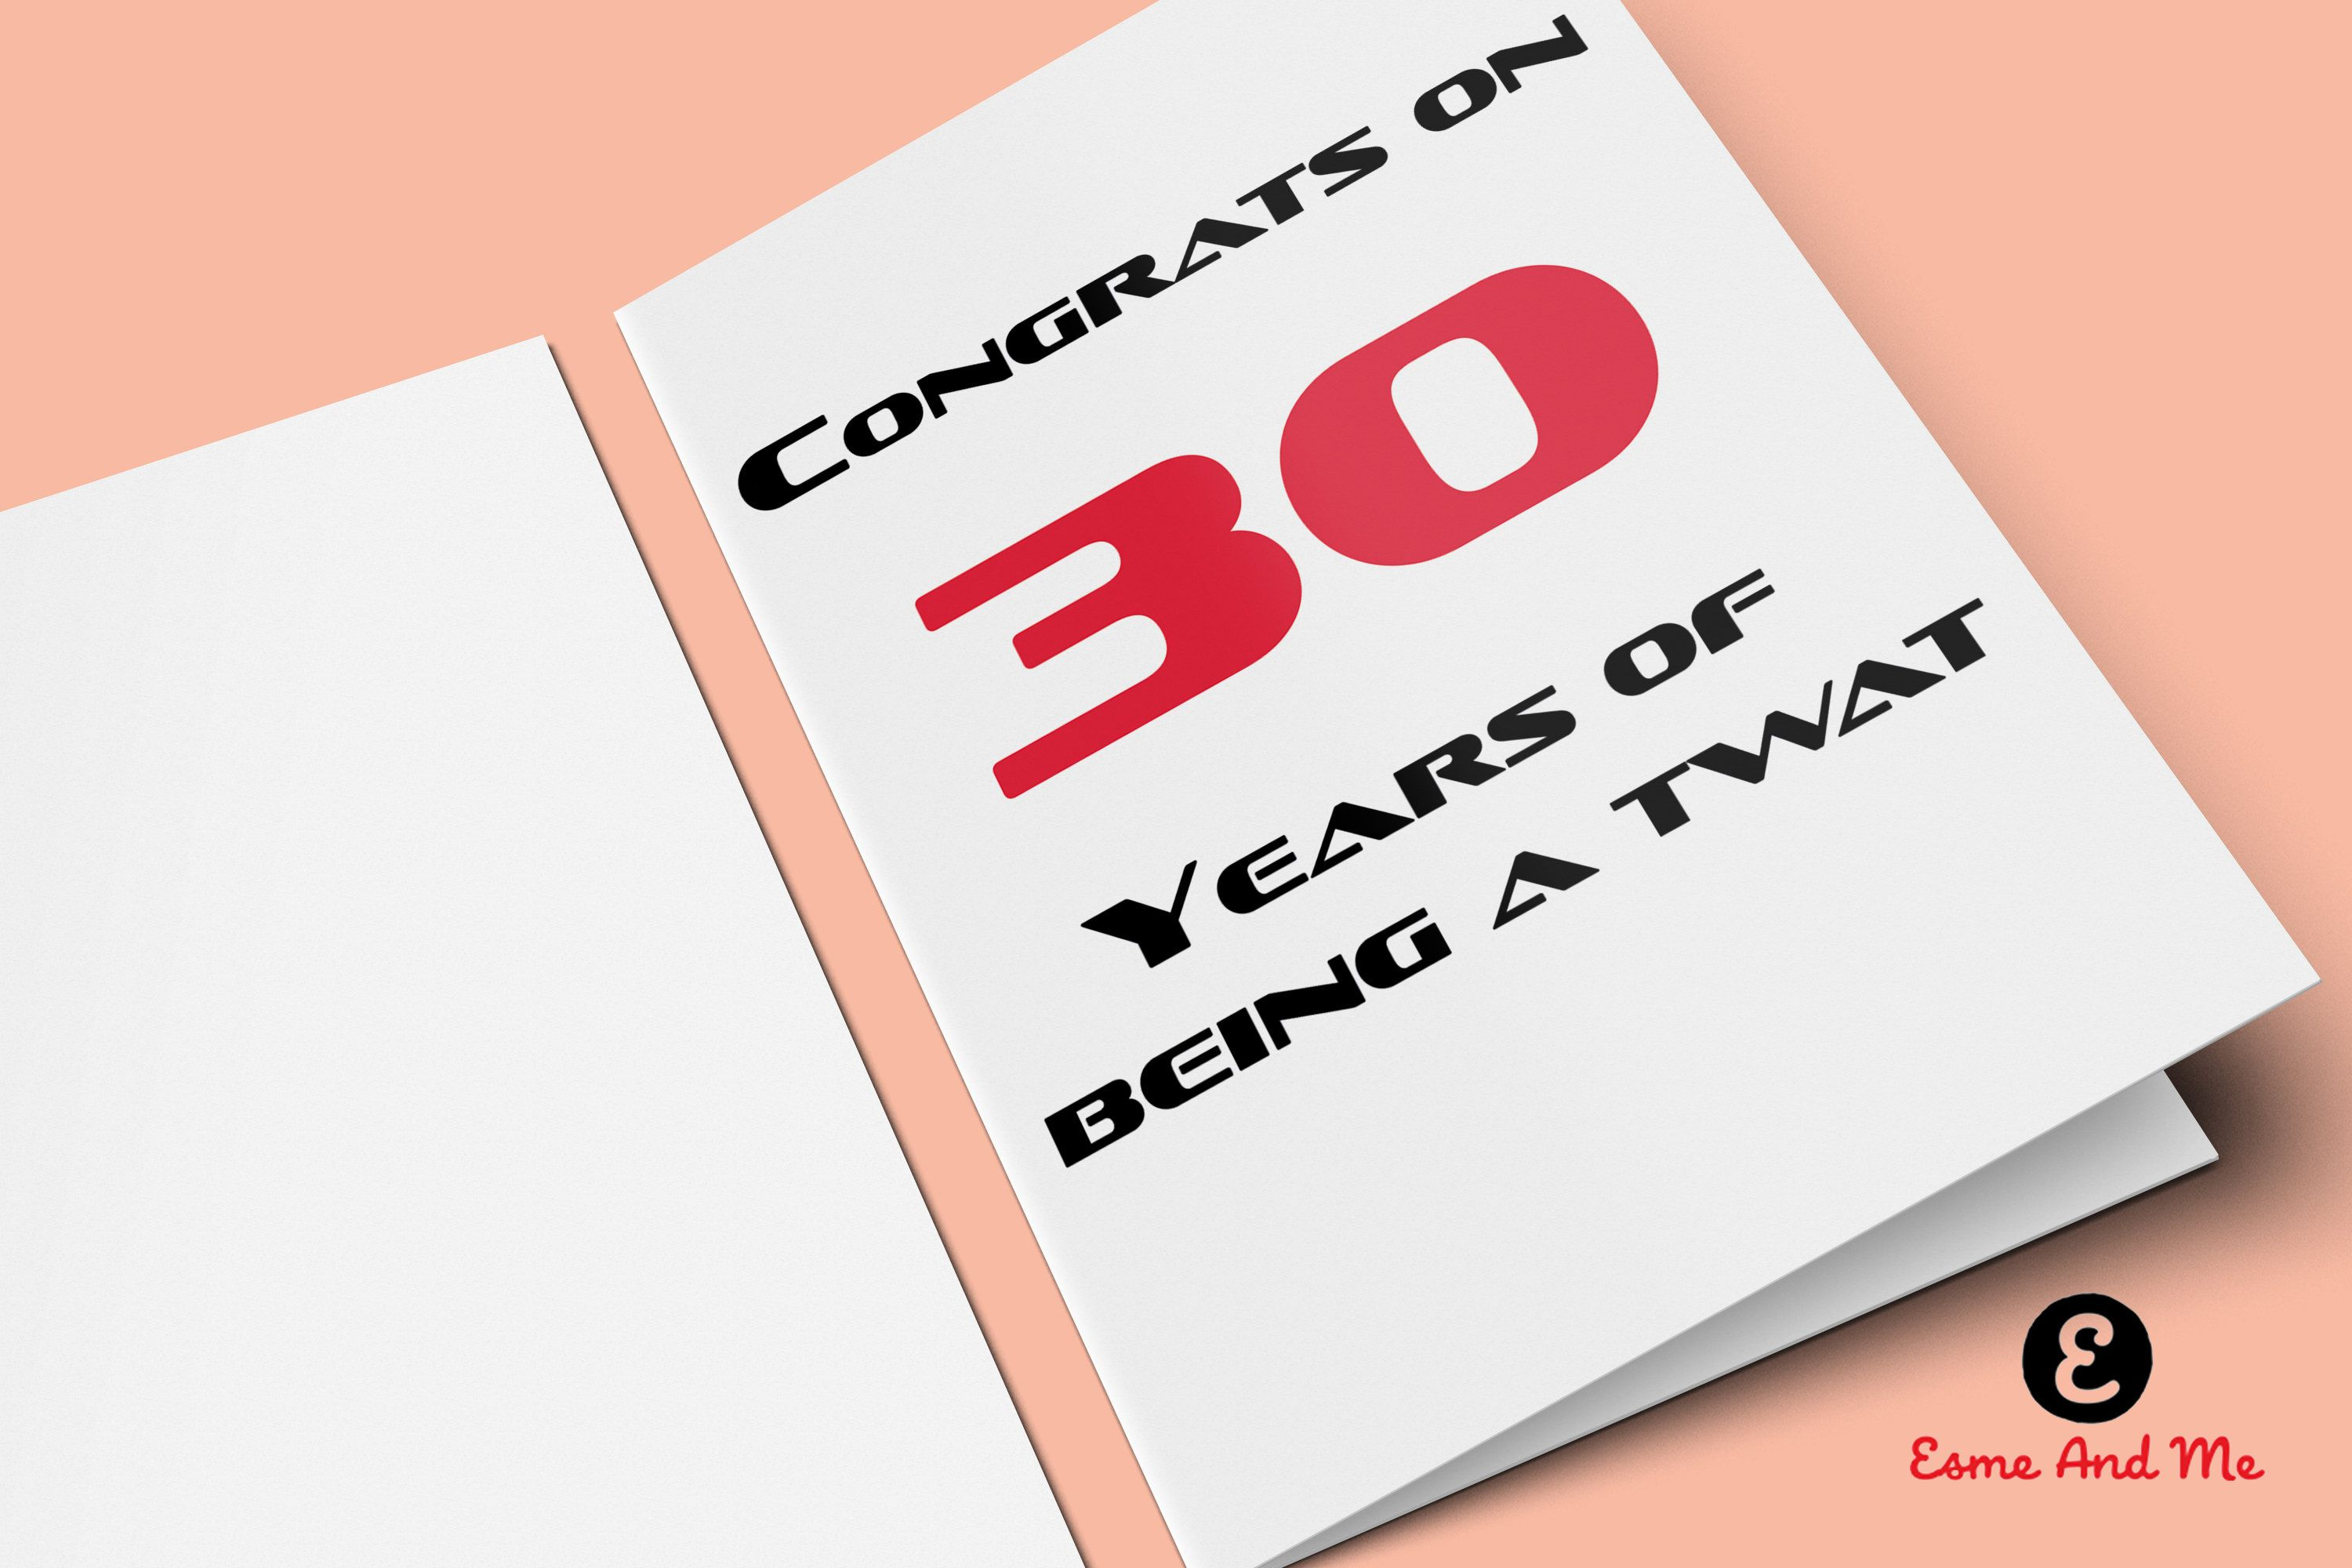 Congrats On 30 Years Of Being A Twat Funny Birthday Card Rude Cheeky Greetings By EsmeandMeUK Etsy